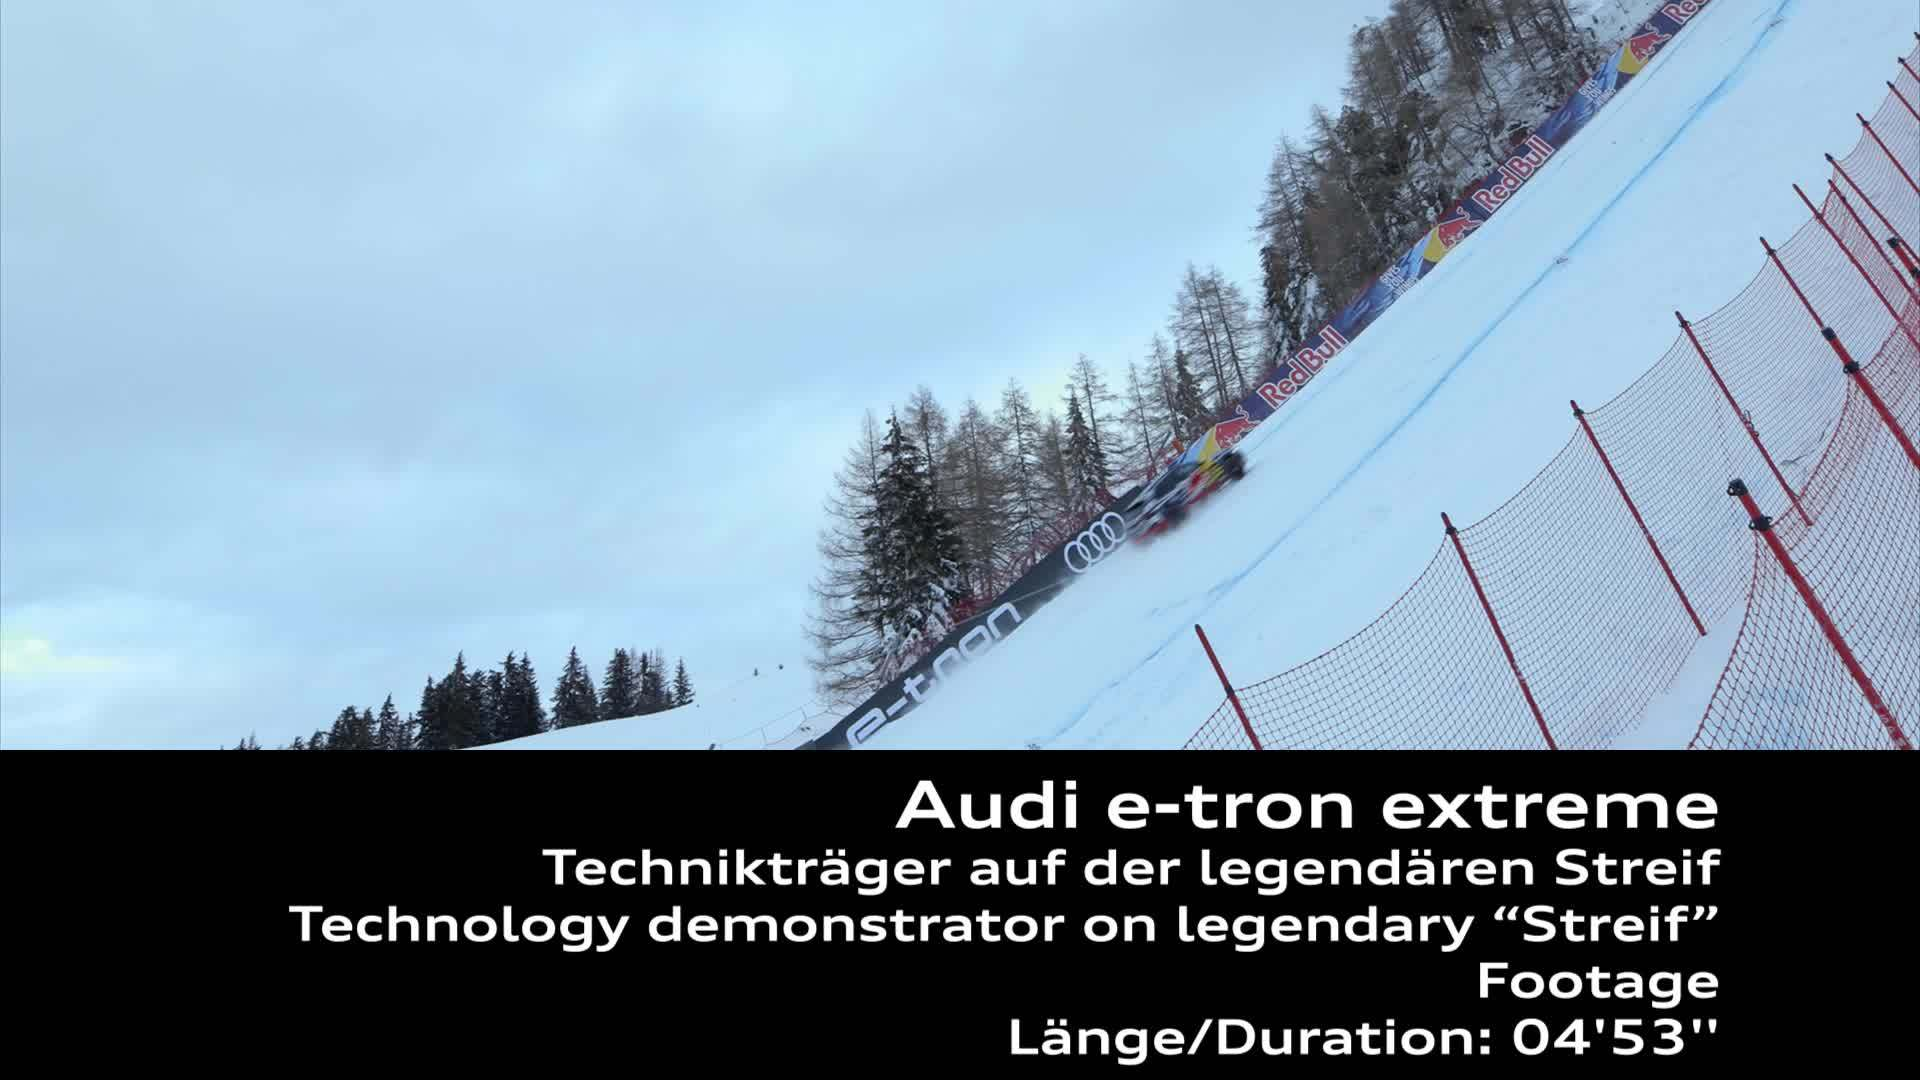 The Audi e-tron technology demonstrator on the legendary Streif (Footage)